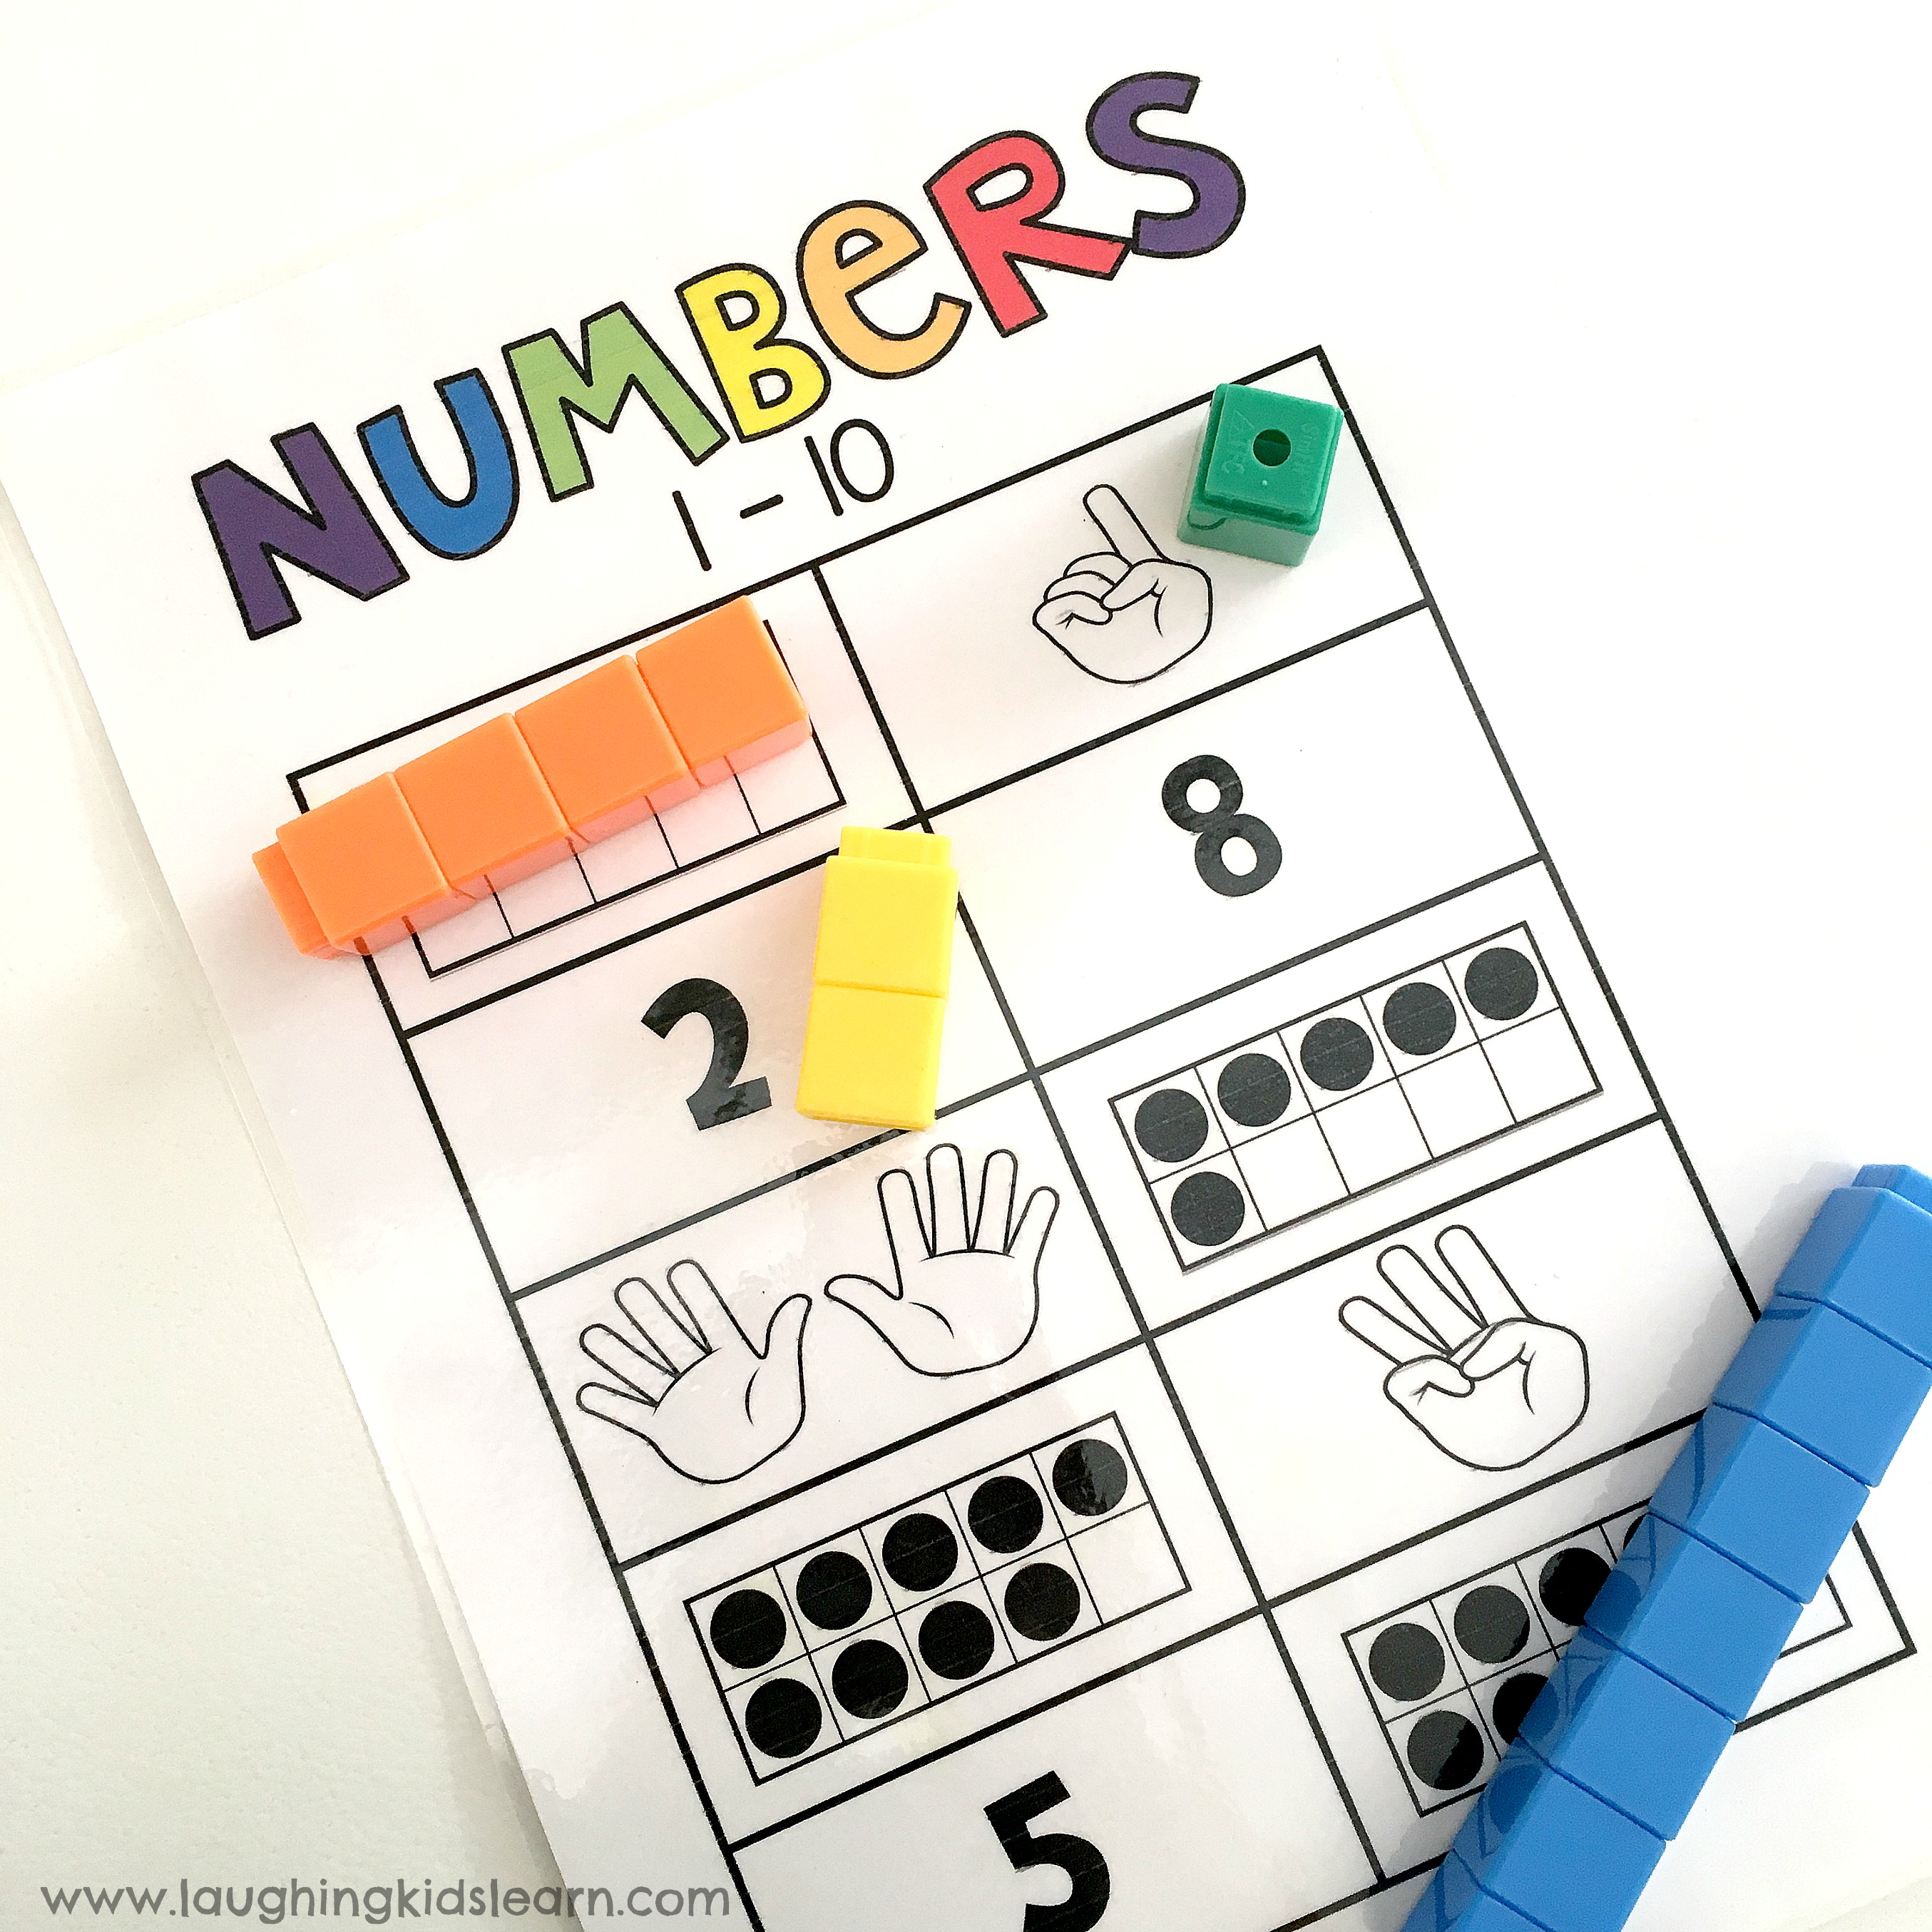 Number counting 1 - 10 activity pages - Laughing Kids Learn